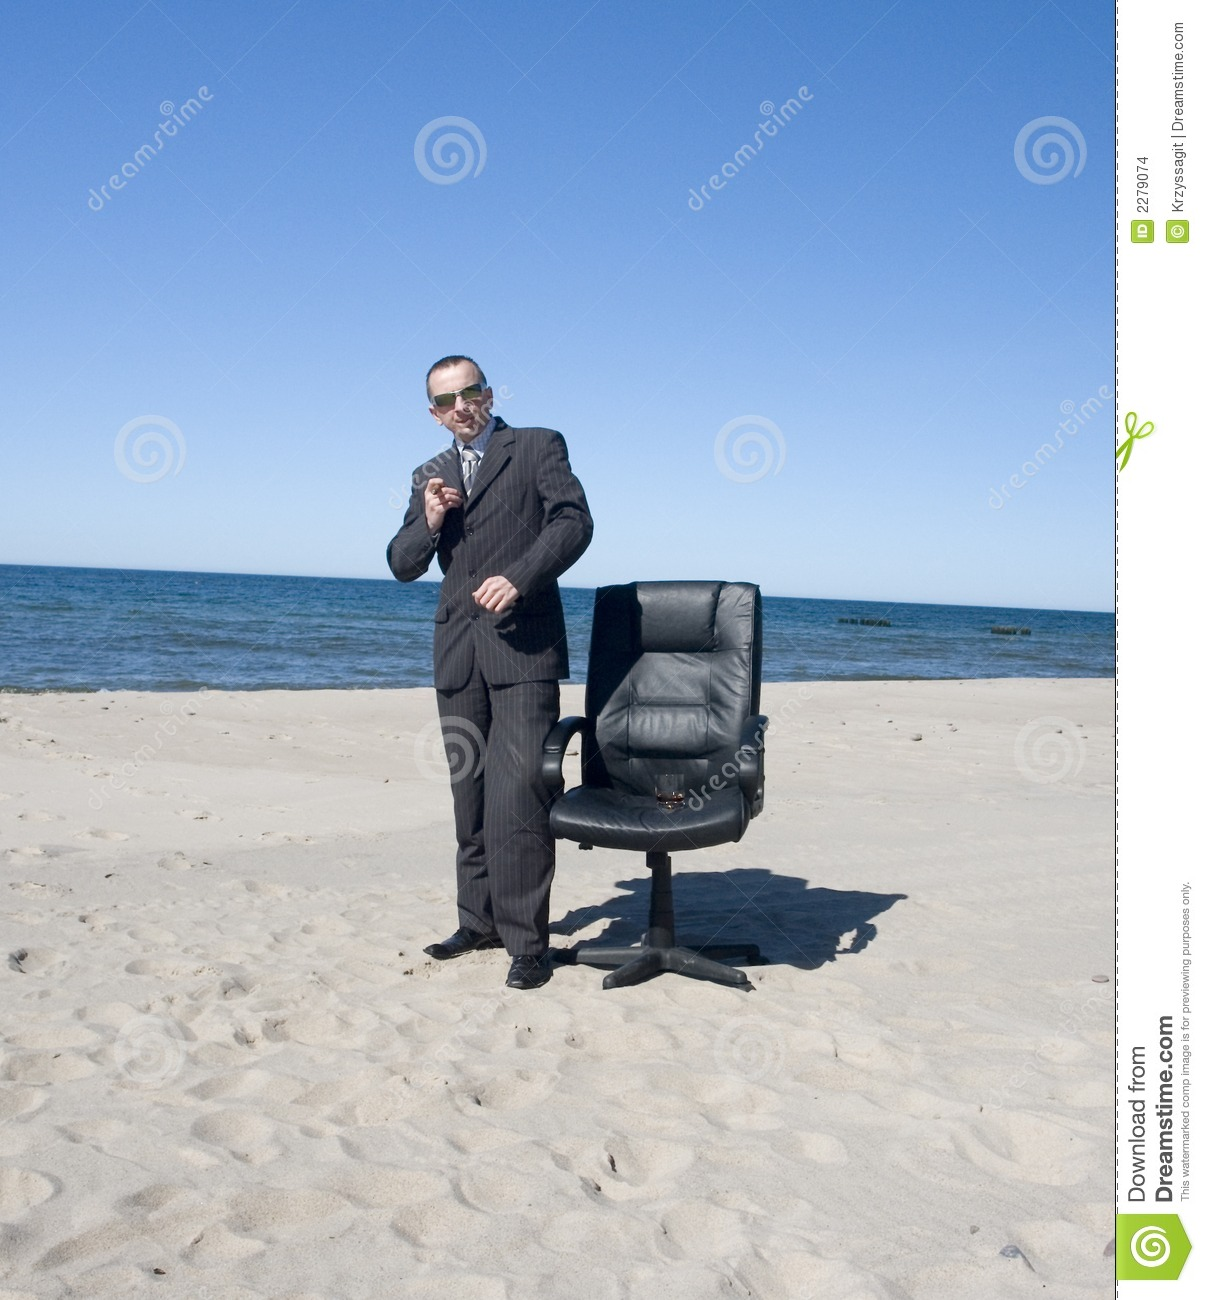 business-man-beach-2279074.jpg